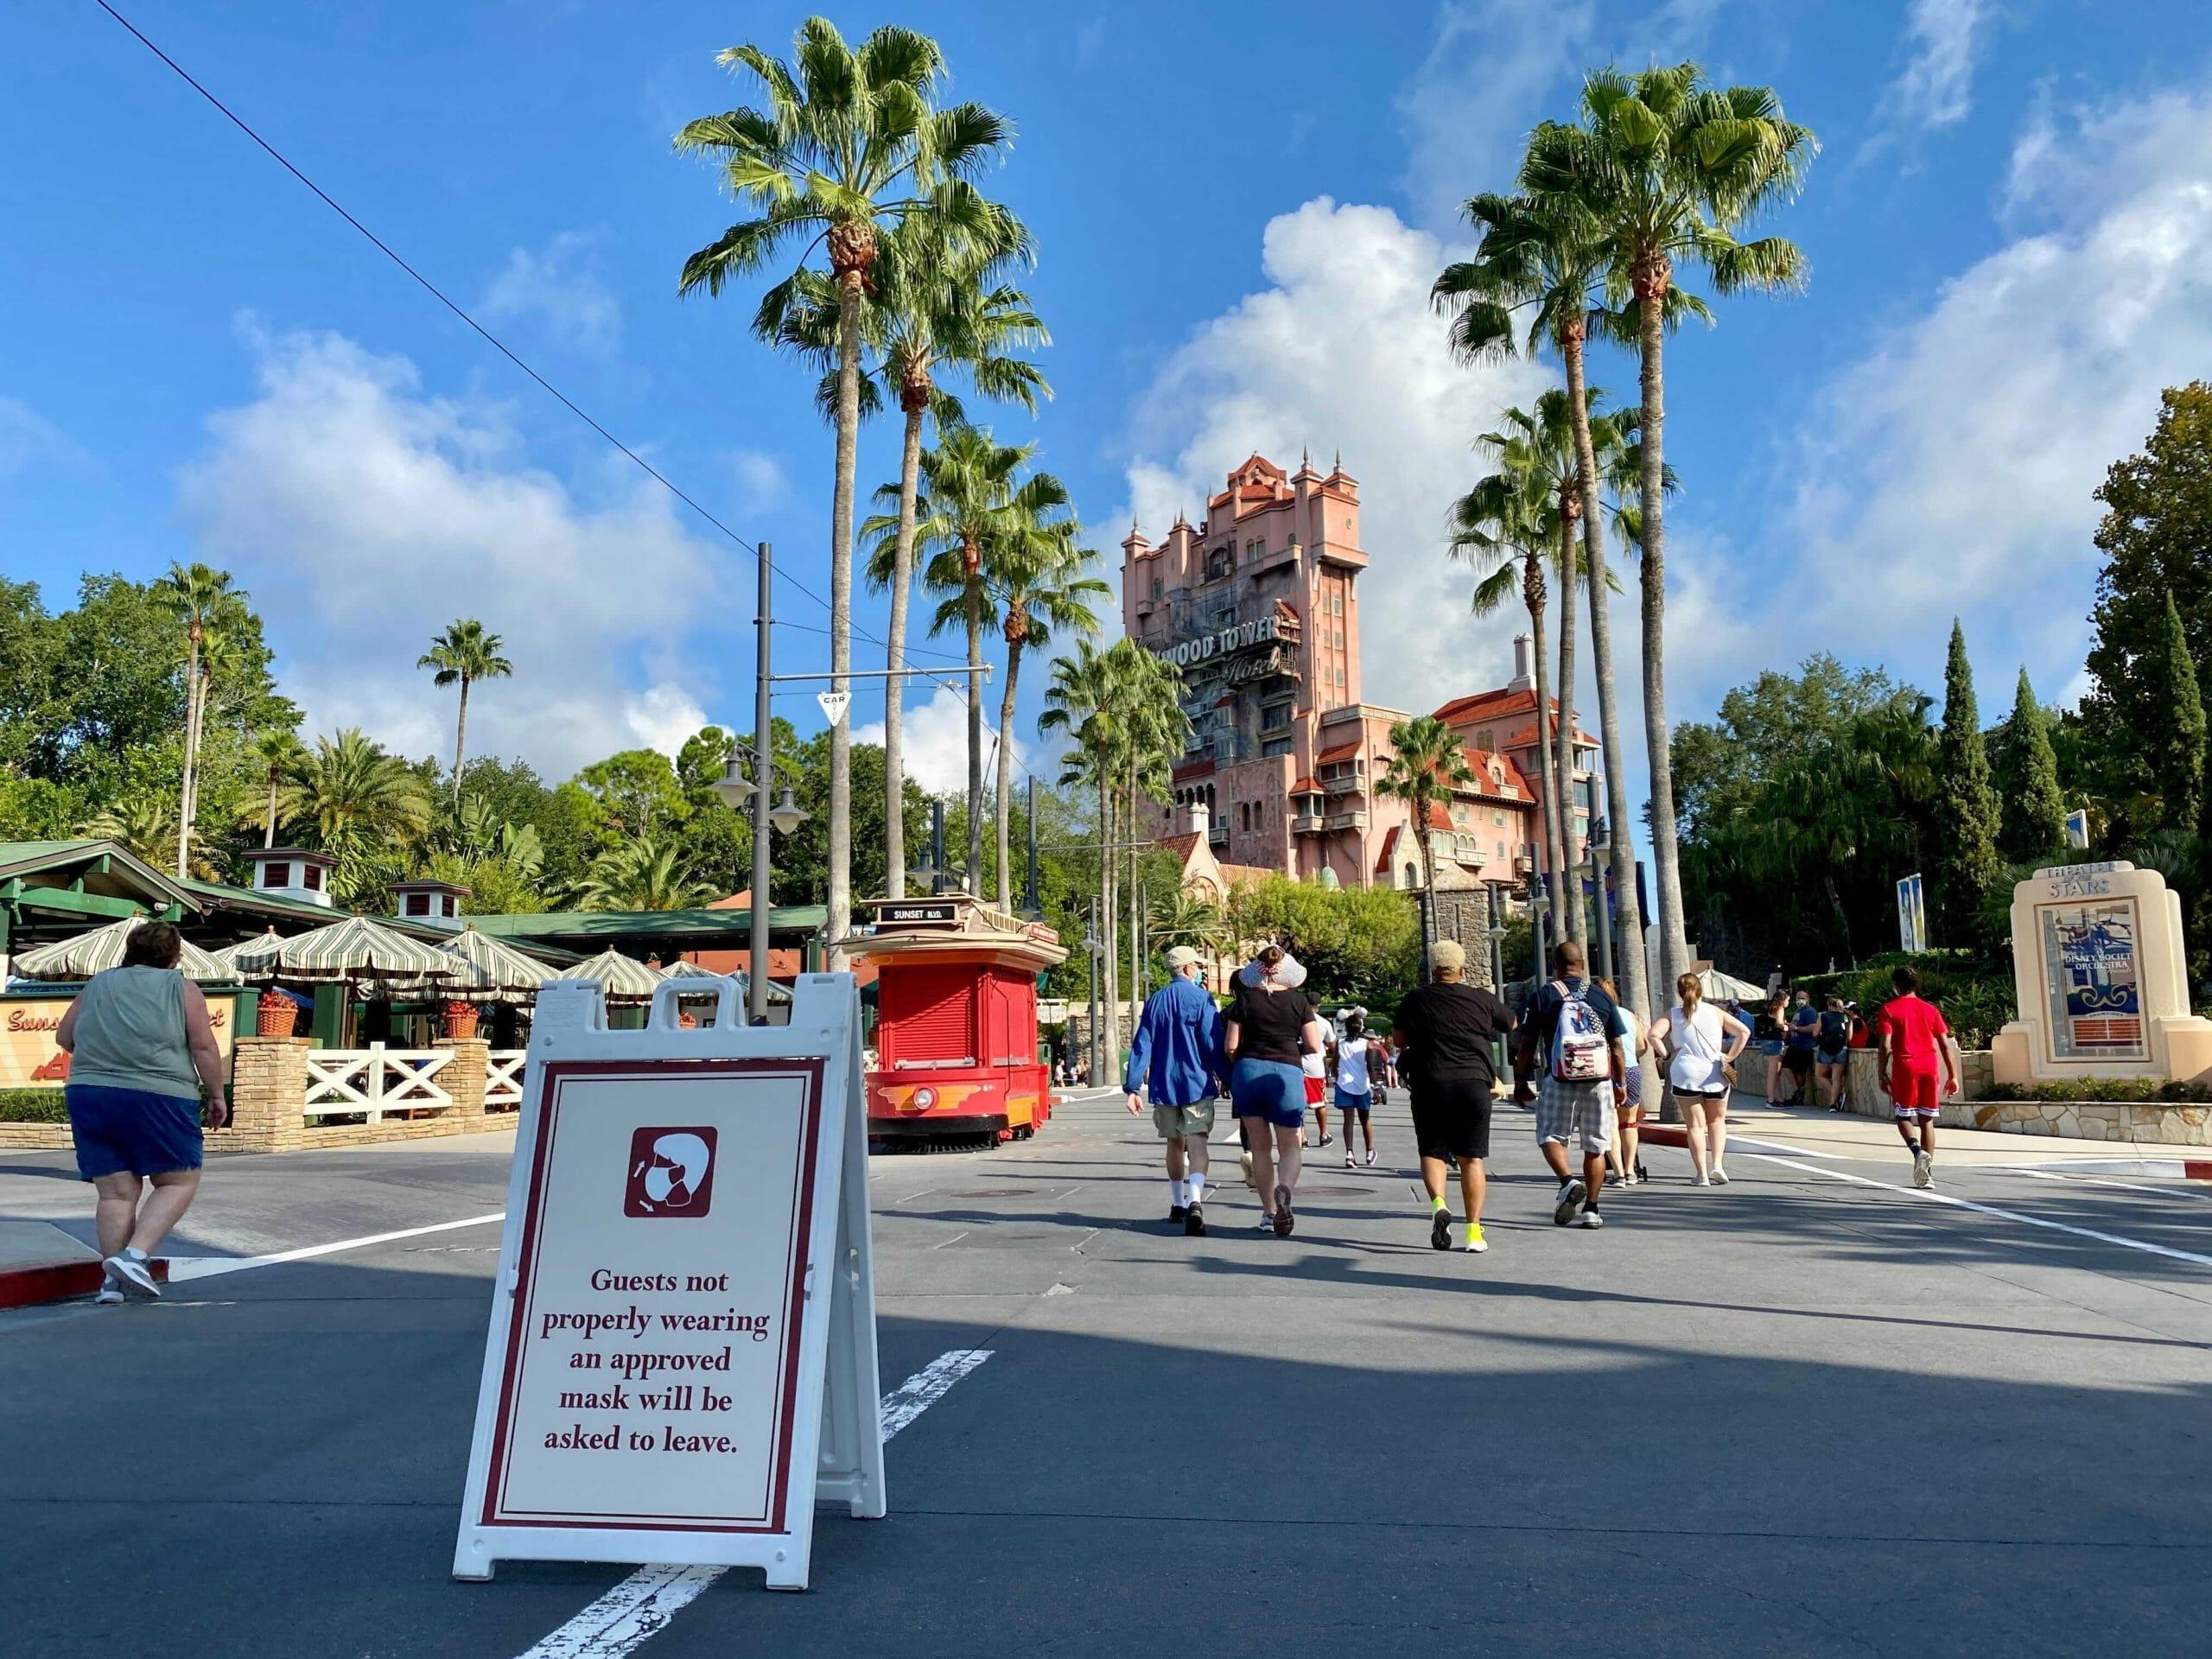 Disney Asks Guests To Comeback Another Time If They Can't Follow Mask Rules